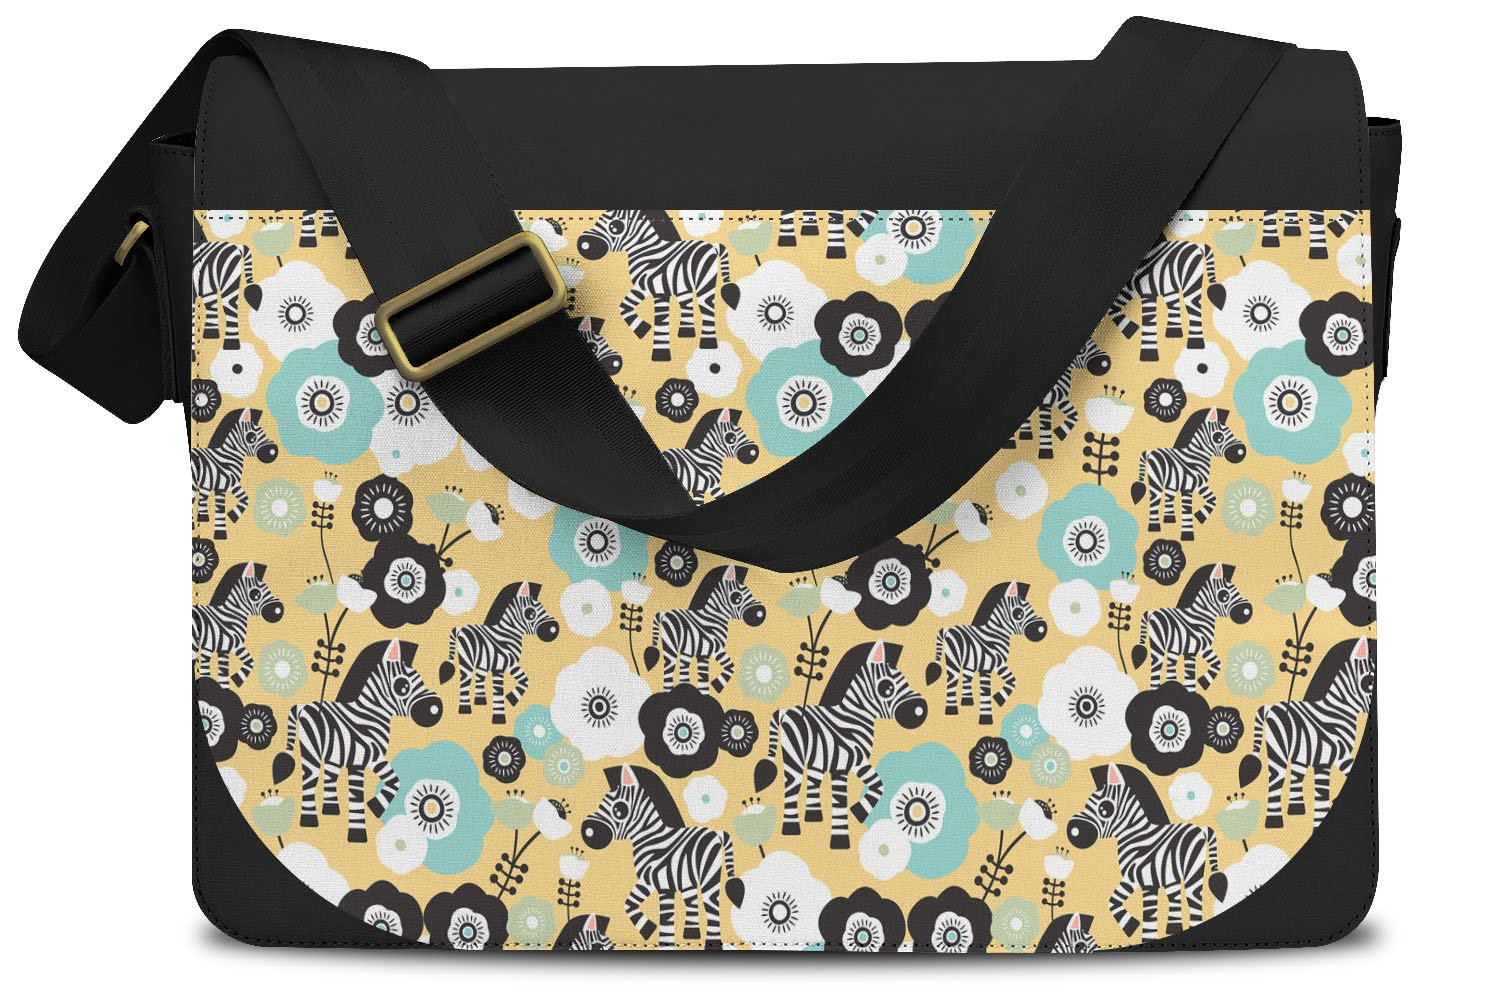 Zebra Blossoms Yellow - One Size Messenger Bag - Messenger Bag by Queen of Cases (Image #1)